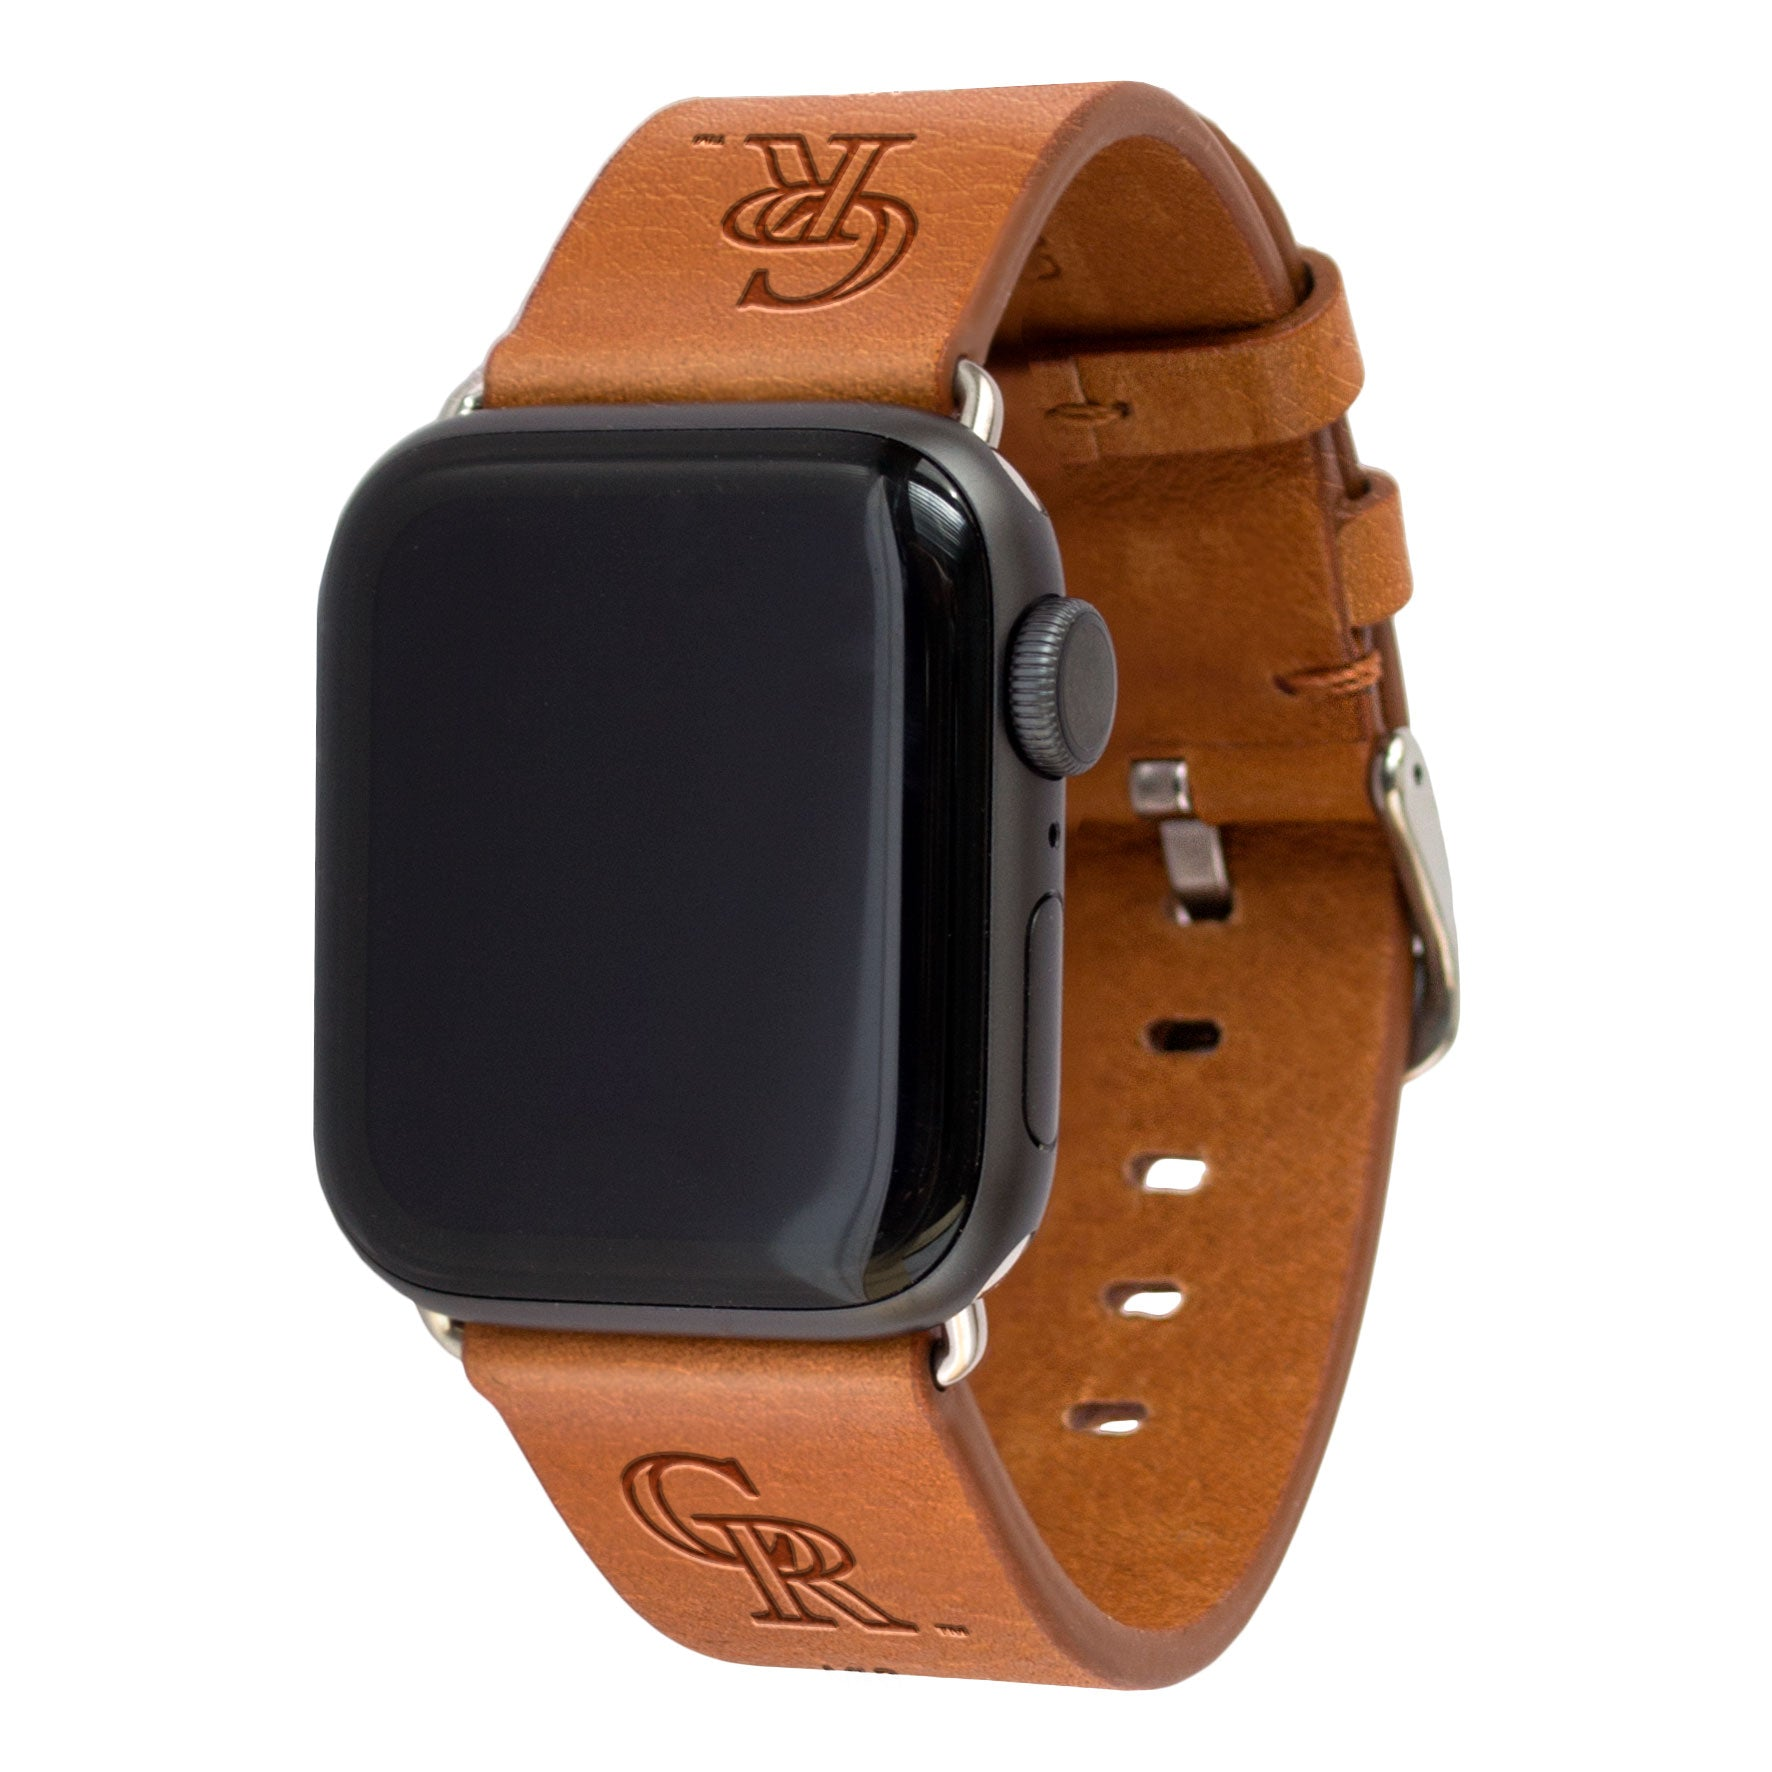 Colorado Rockies Leather Band Compatible with Apple Watch